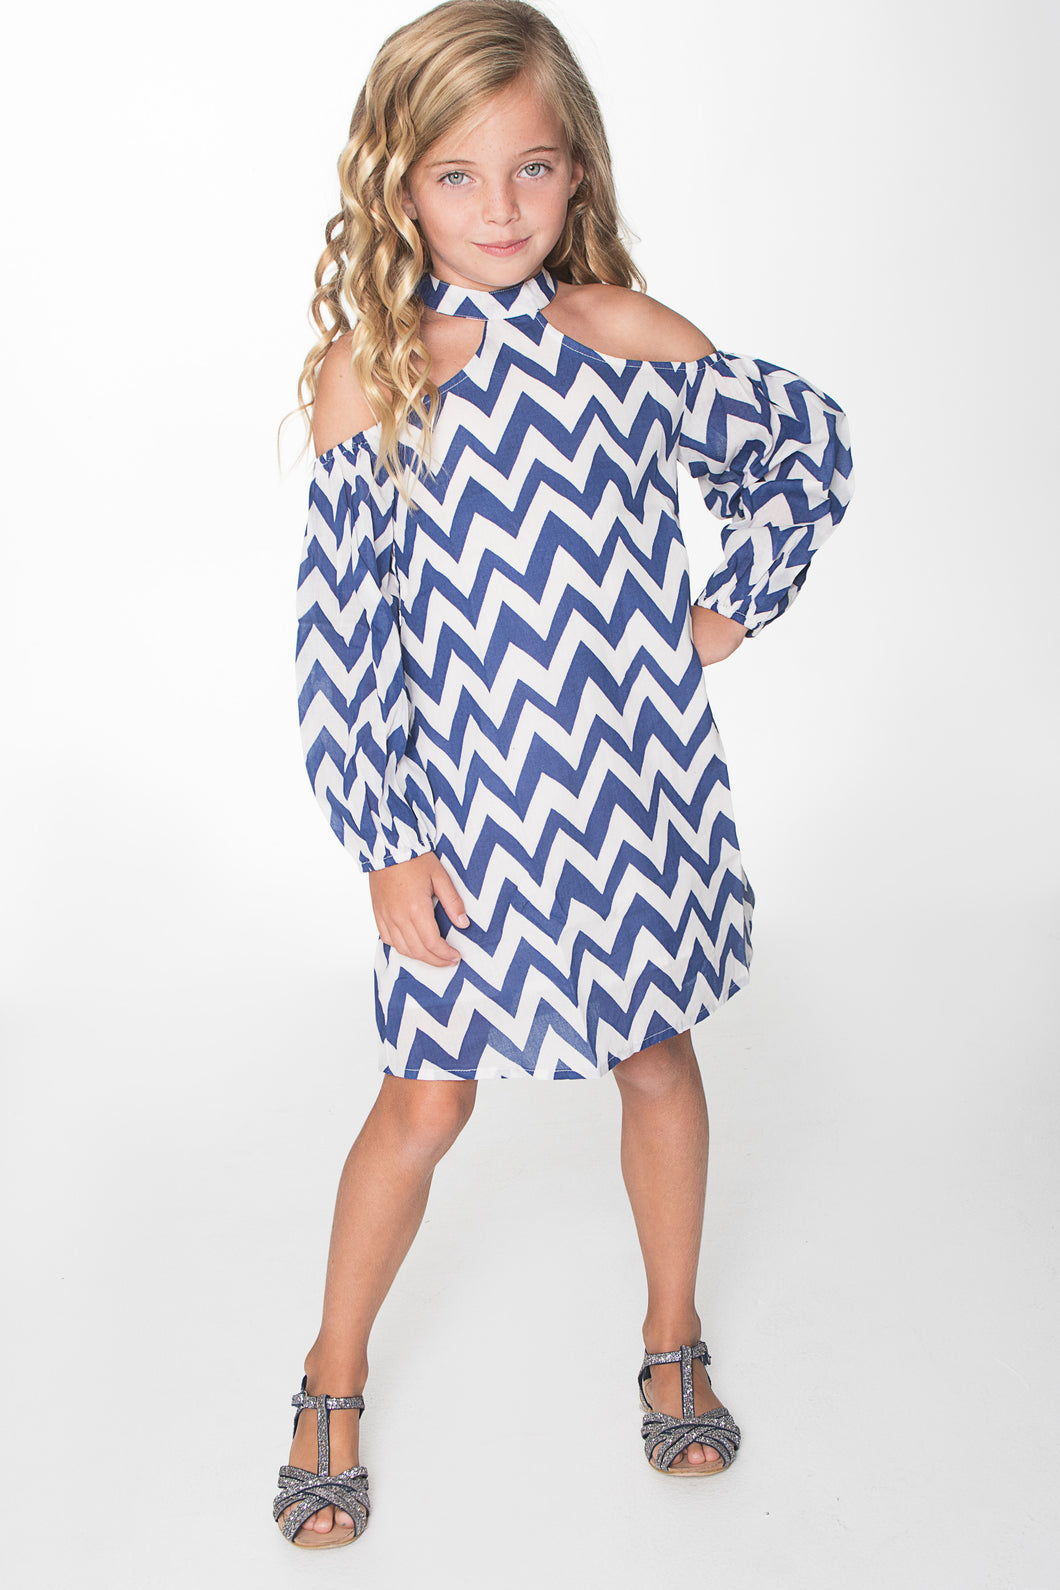 Blue and White Cold Shoulder Chevron Dress - Kids Wholesale Boutique Clothing, Dress - Girls Dresses, Yo Baby Wholesale - Yo Baby